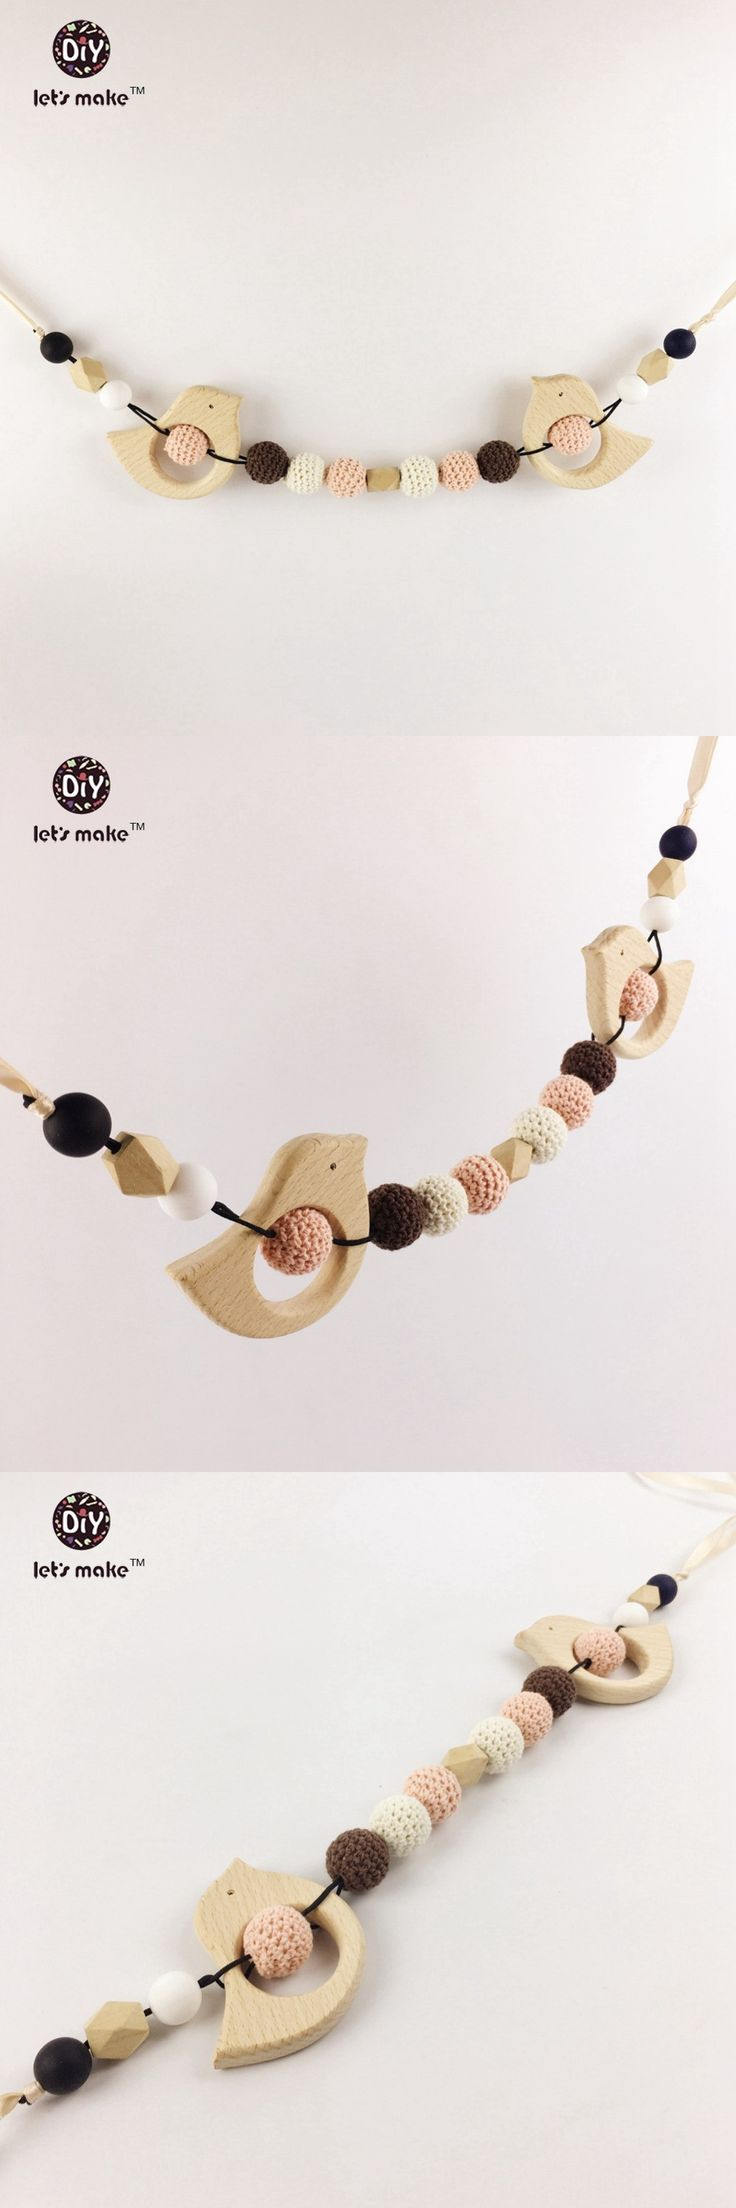 Stroller mobile crochet Beads baby mobile pram Woman Fashion chain Crochet baby toys for stroller Teething wooden baby toy